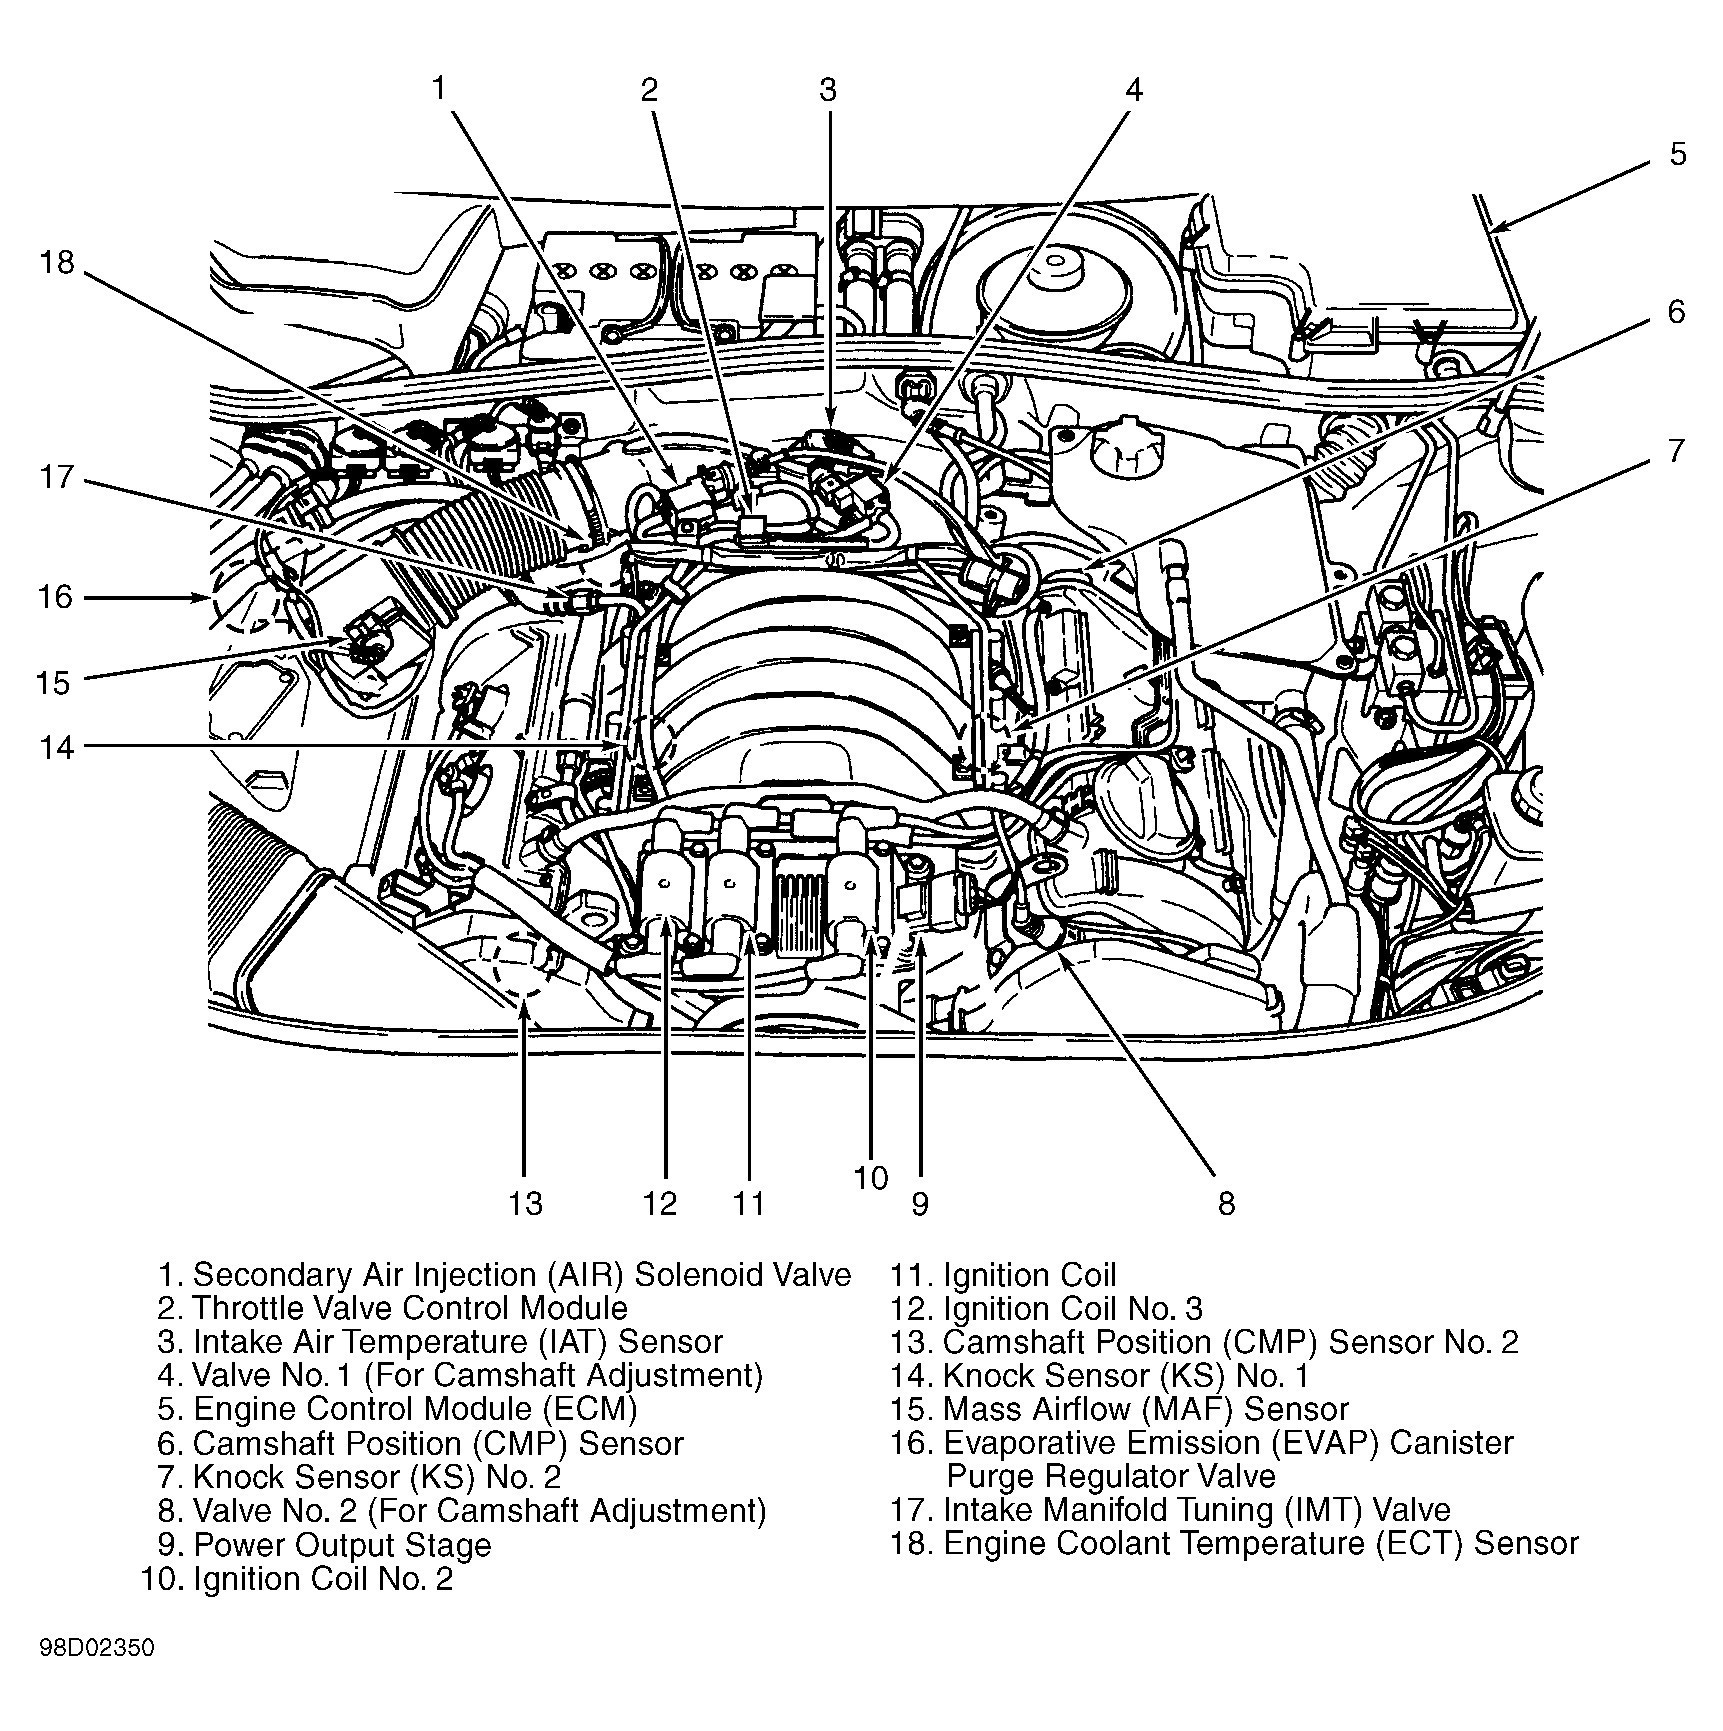 2000 Durango Engine Diagram Wiring Library Ignition 2004 5 7 Custom U2022 Rh Littlewaves Co 2002 Dodge